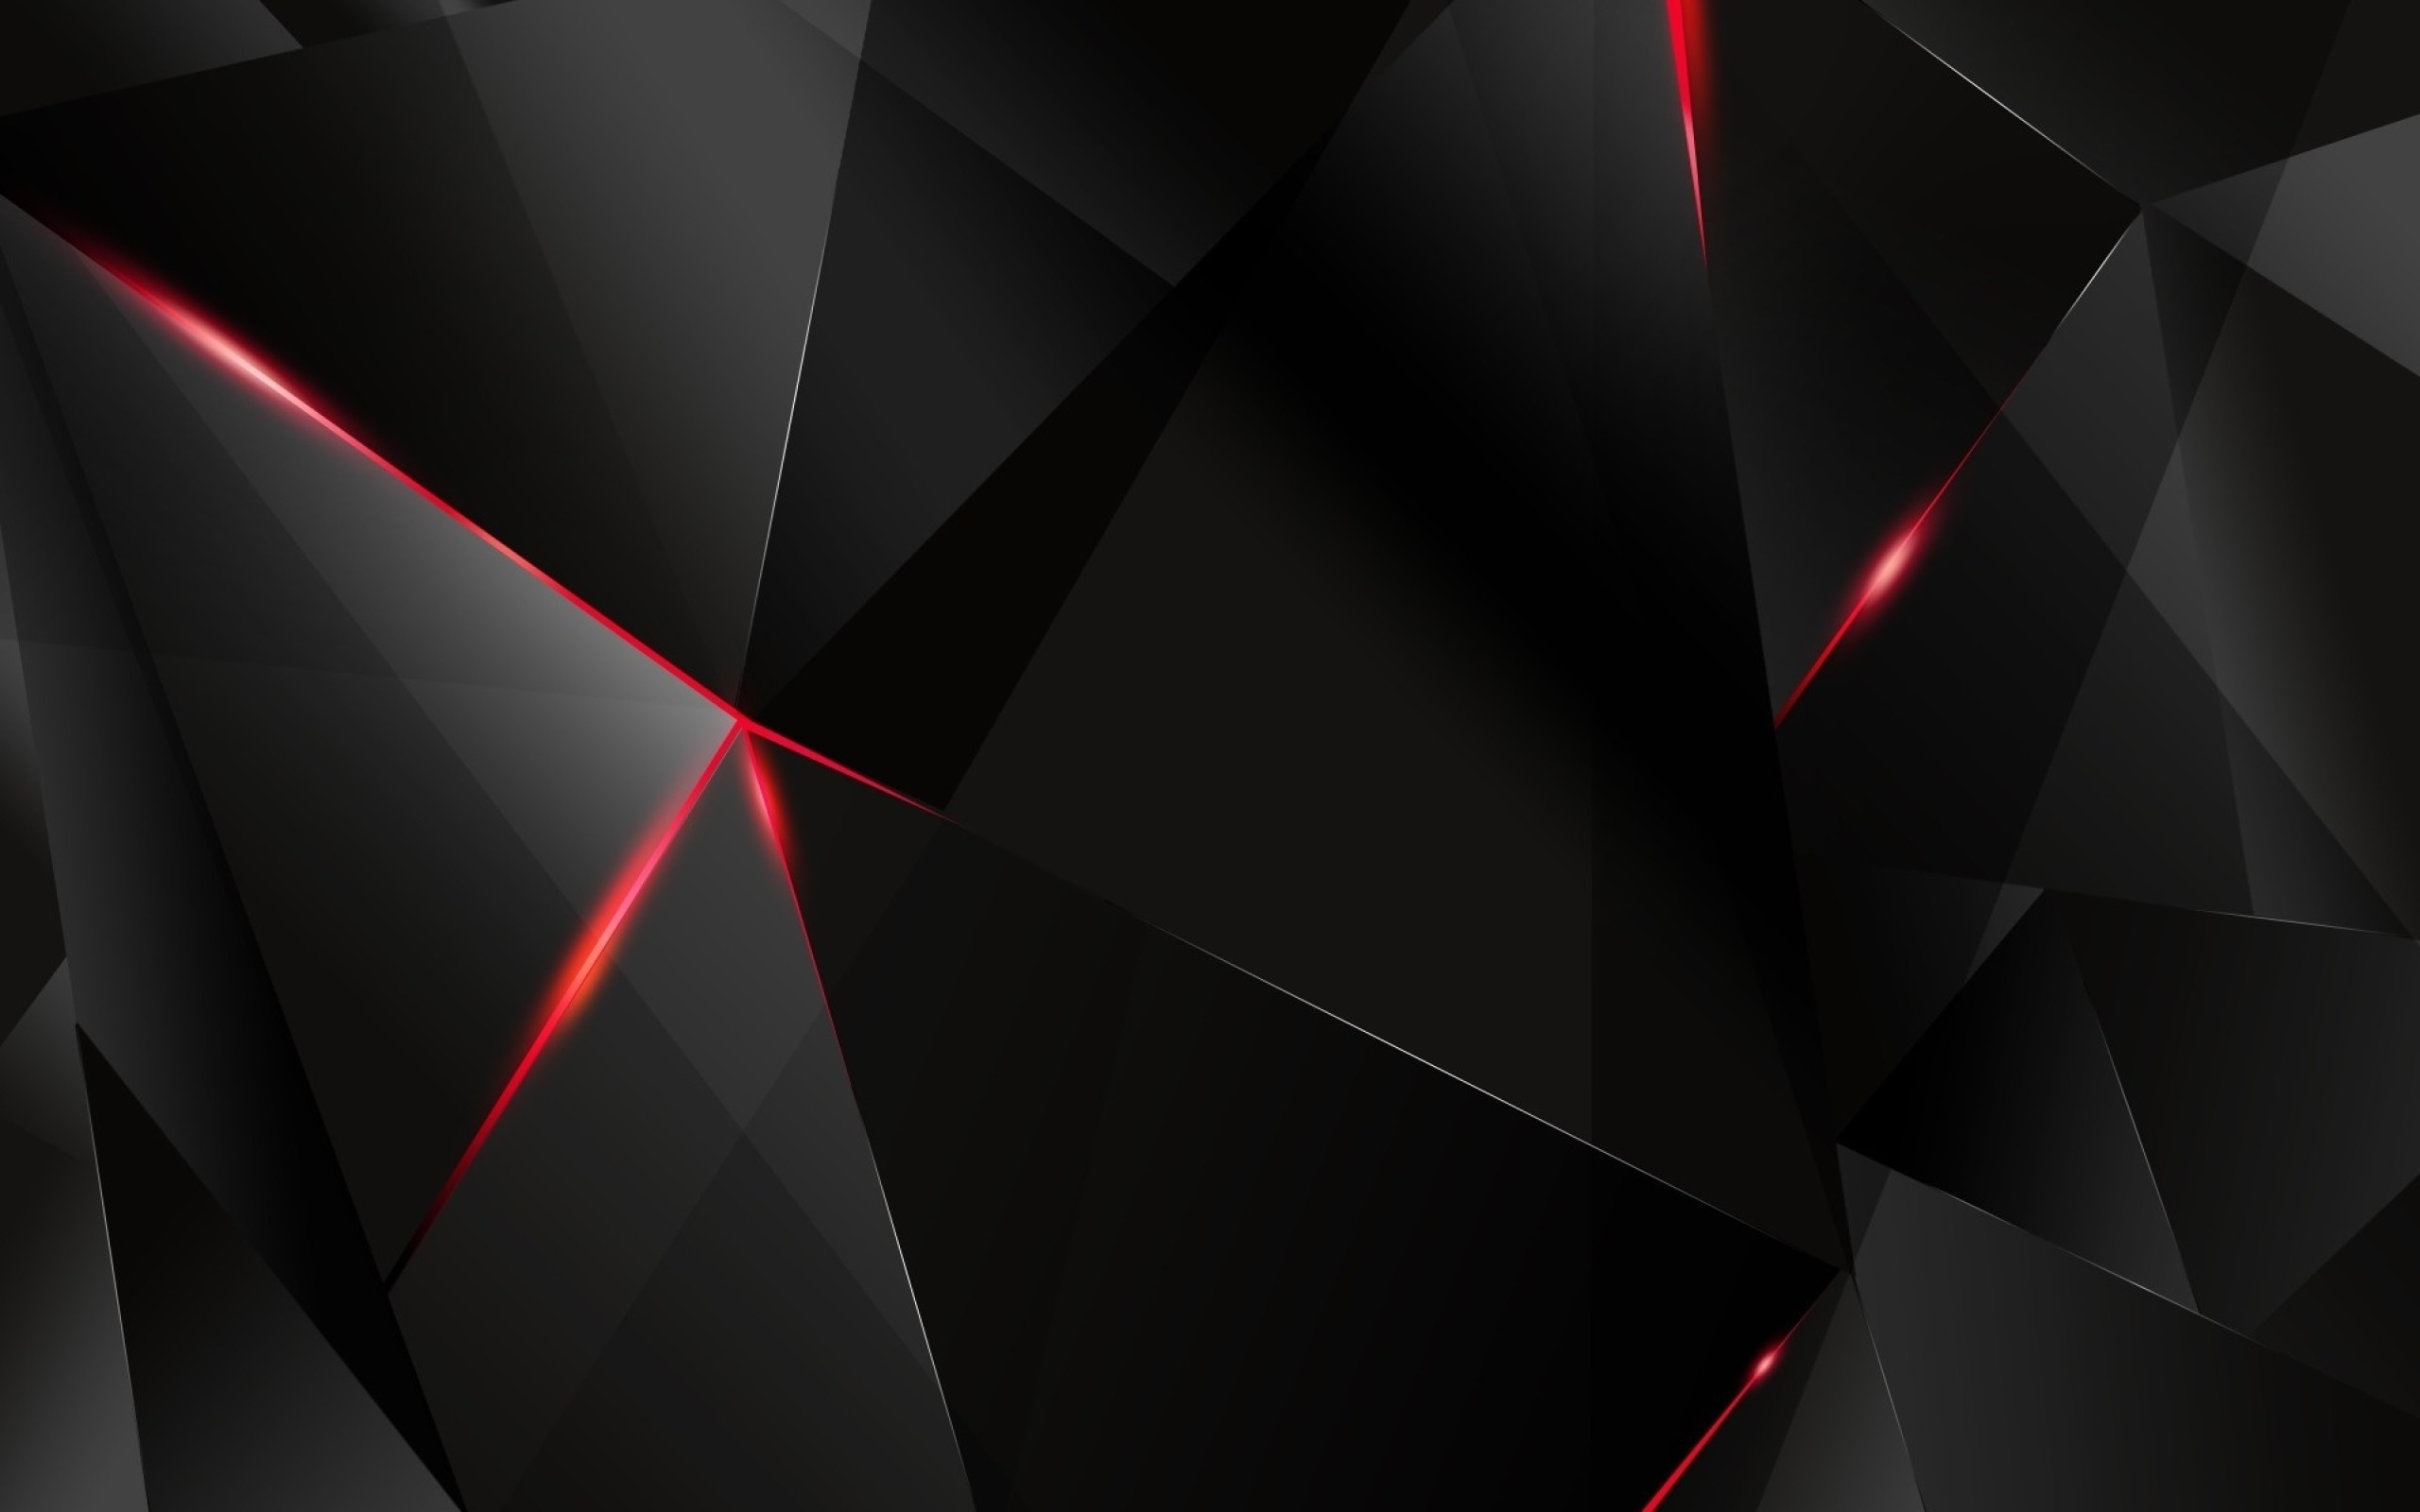 Wallpaper Hd 1080p Space Black And Red Wallpaper 183 ① Download Free Stunning